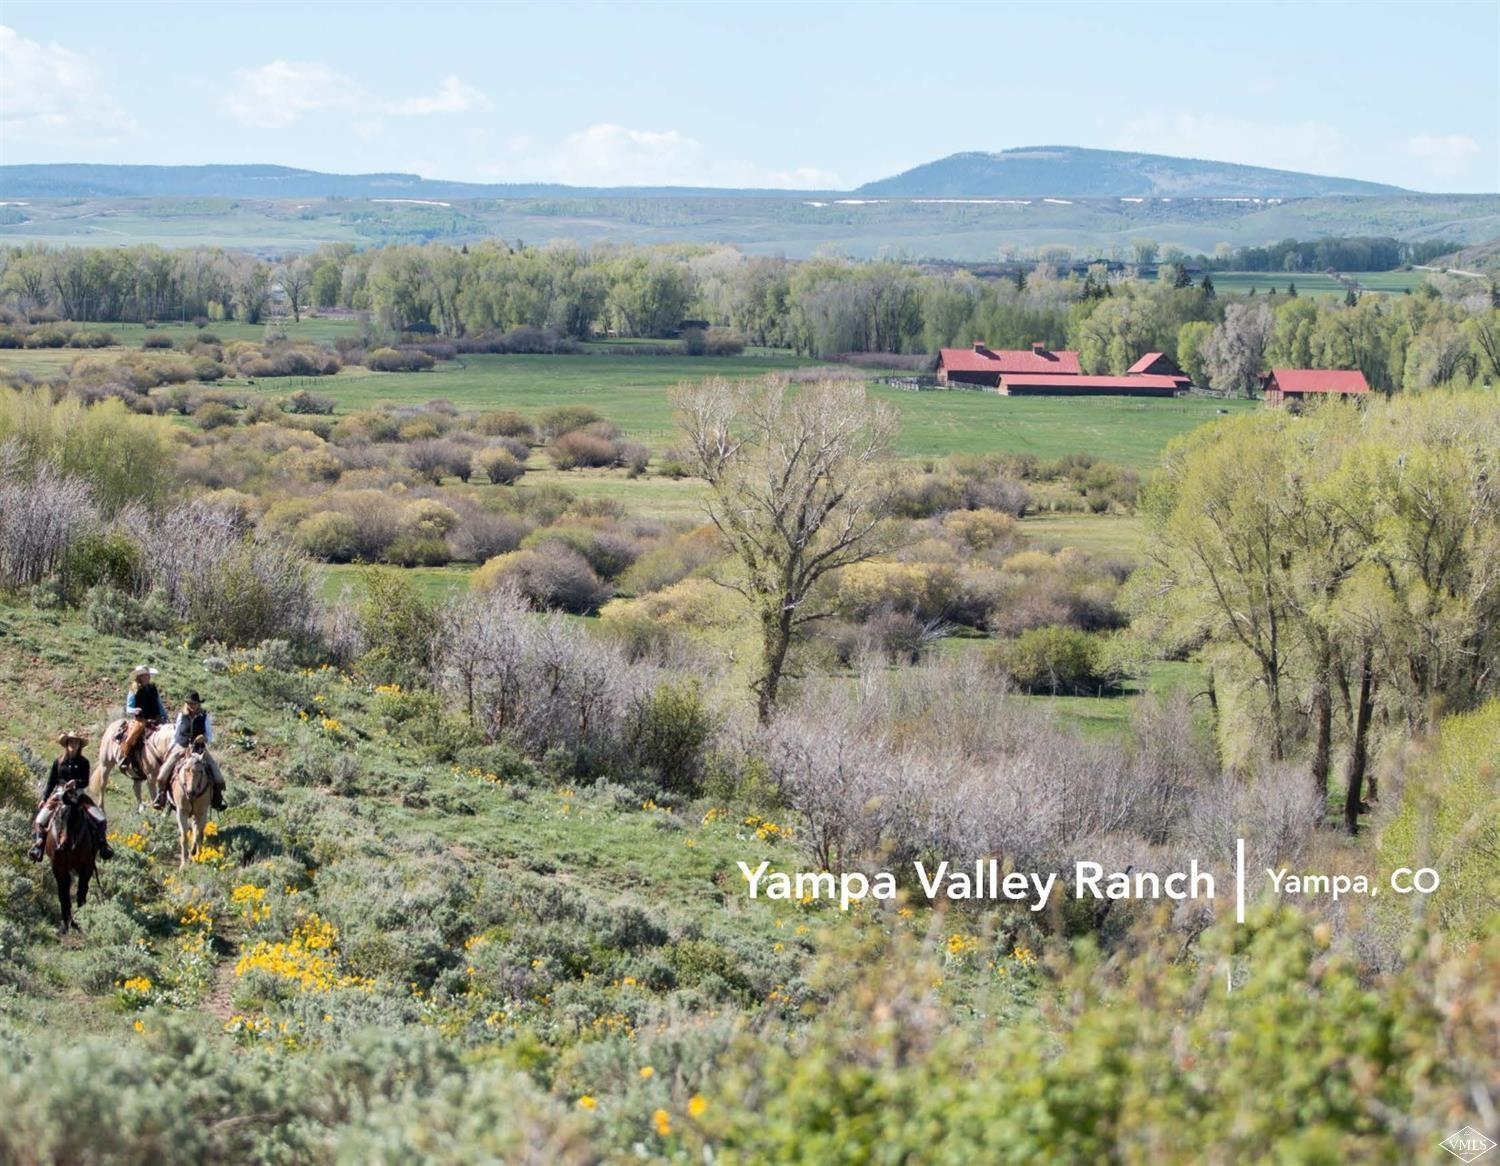 16620 State Highway 131, Yampa, CO 80483 Property Photo - Yampa, CO real estate listing